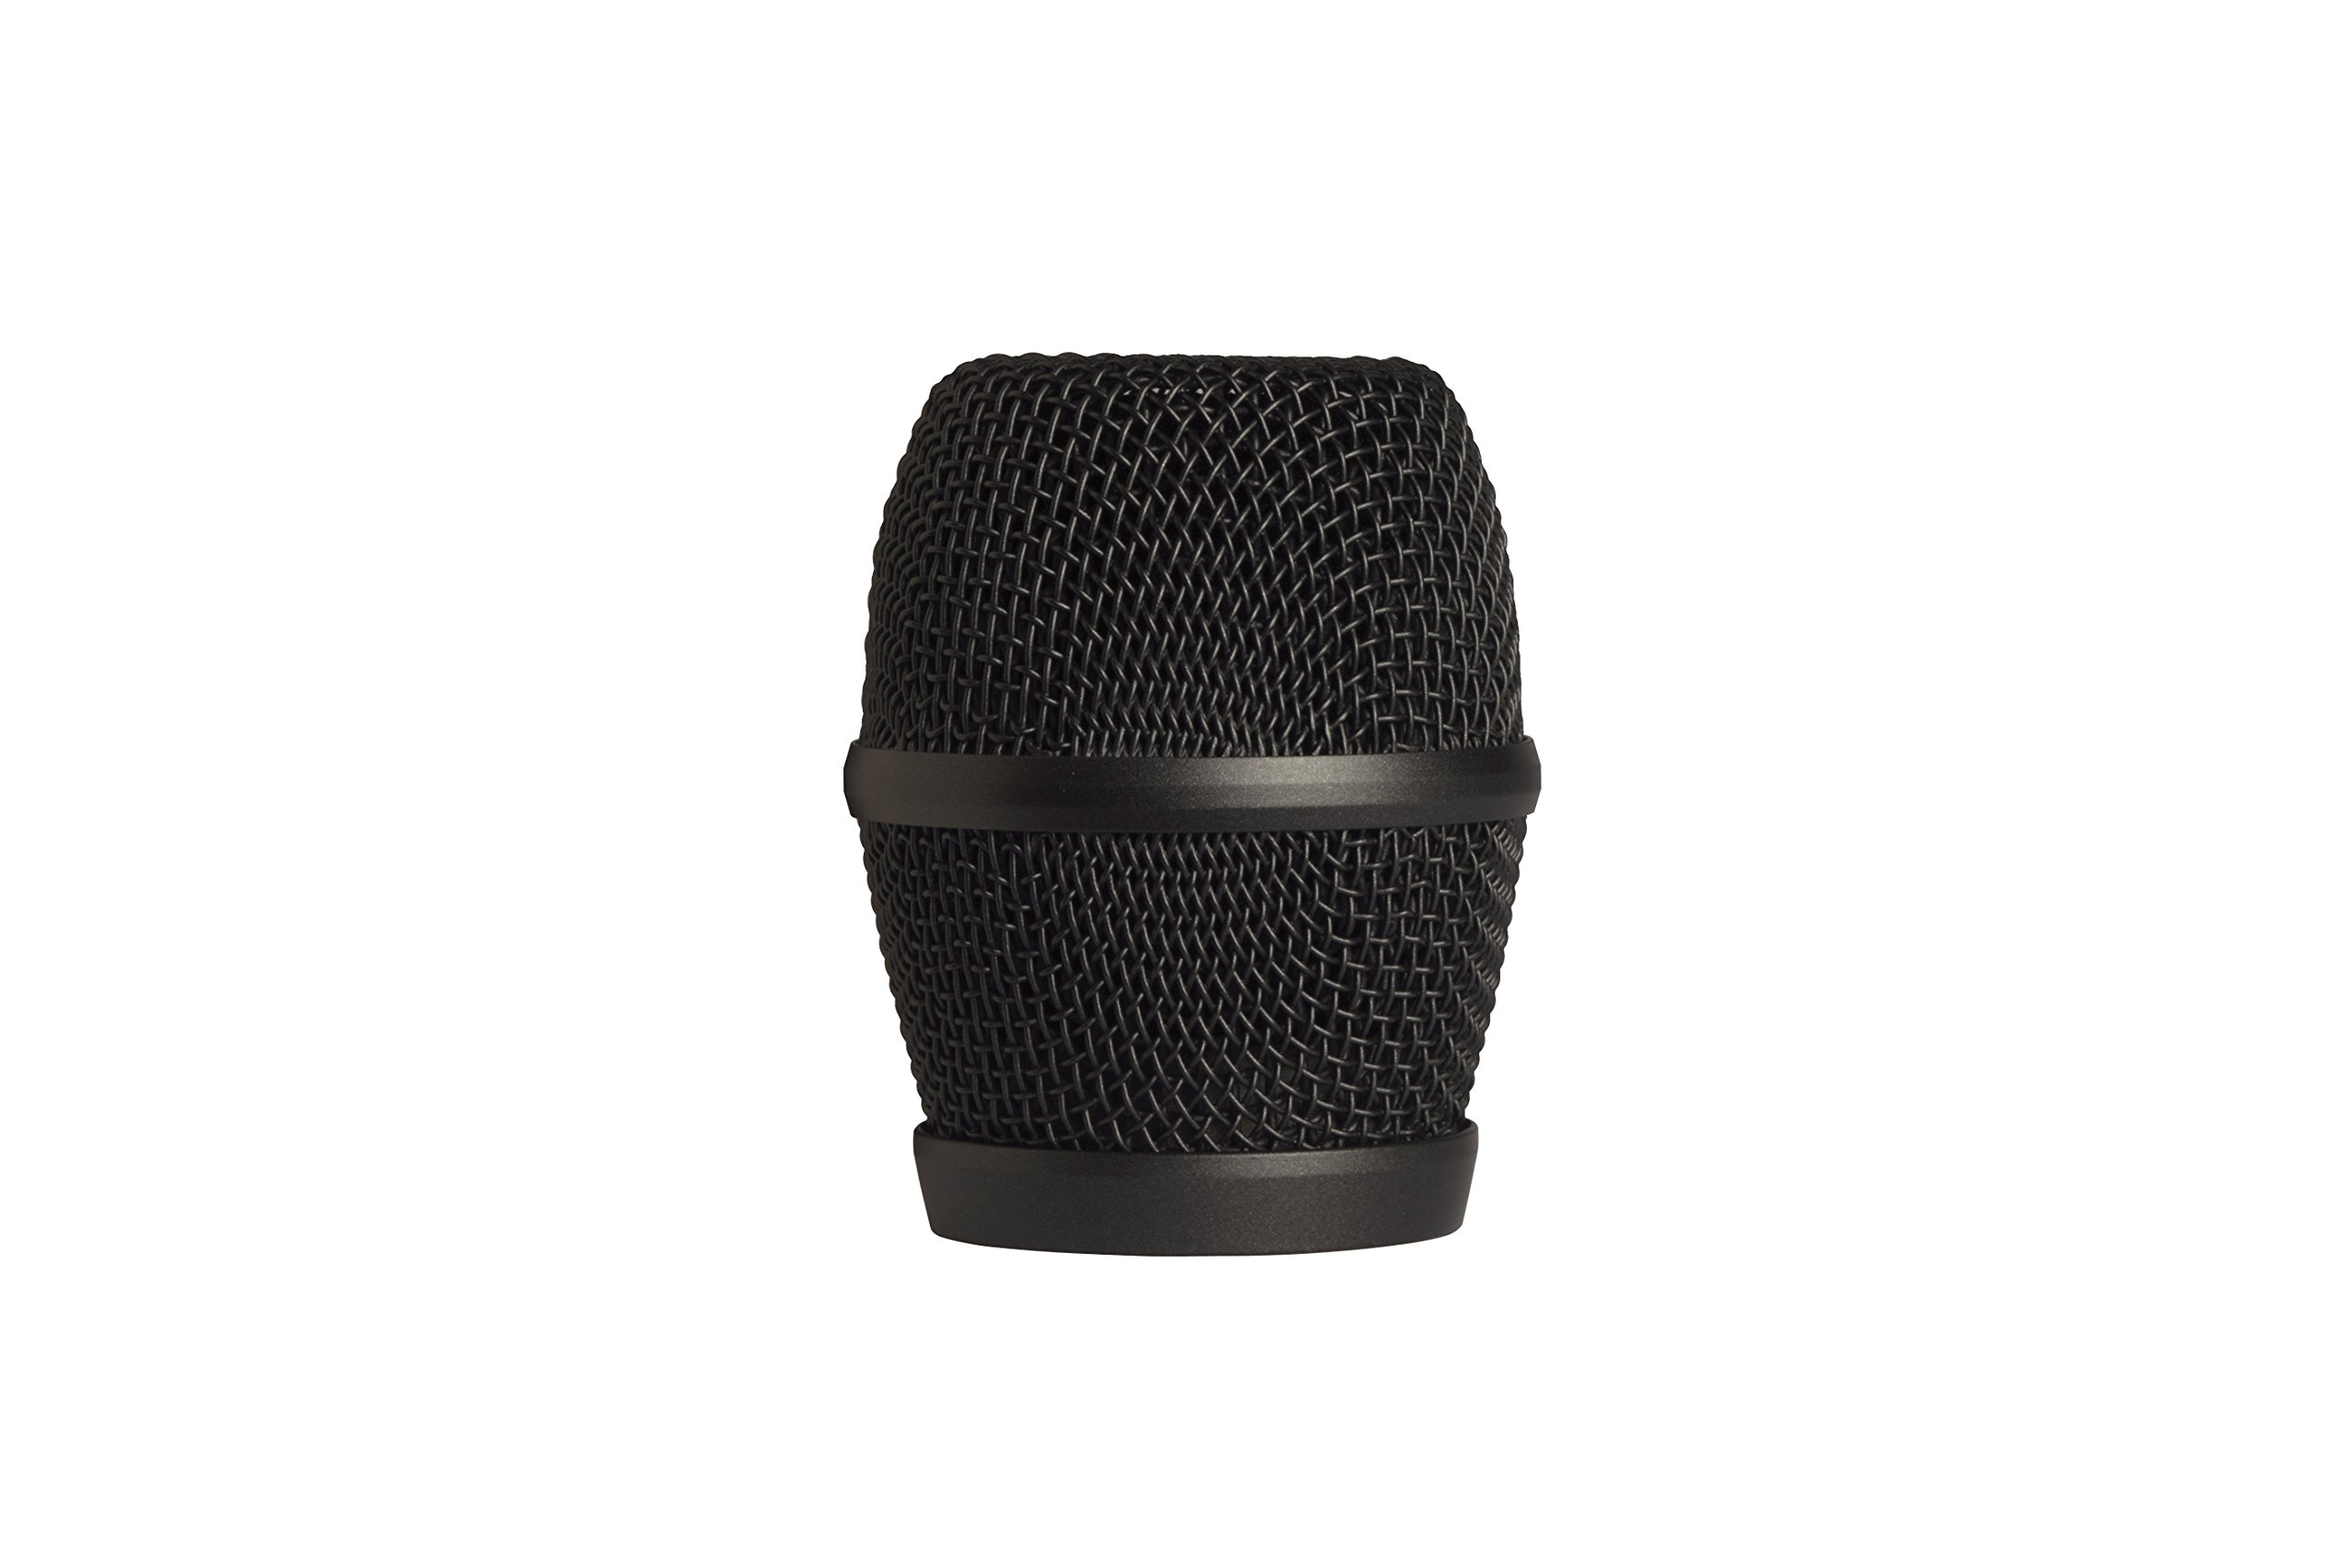 Shure Instrument Condenser Microphone (RPM264) by Shure